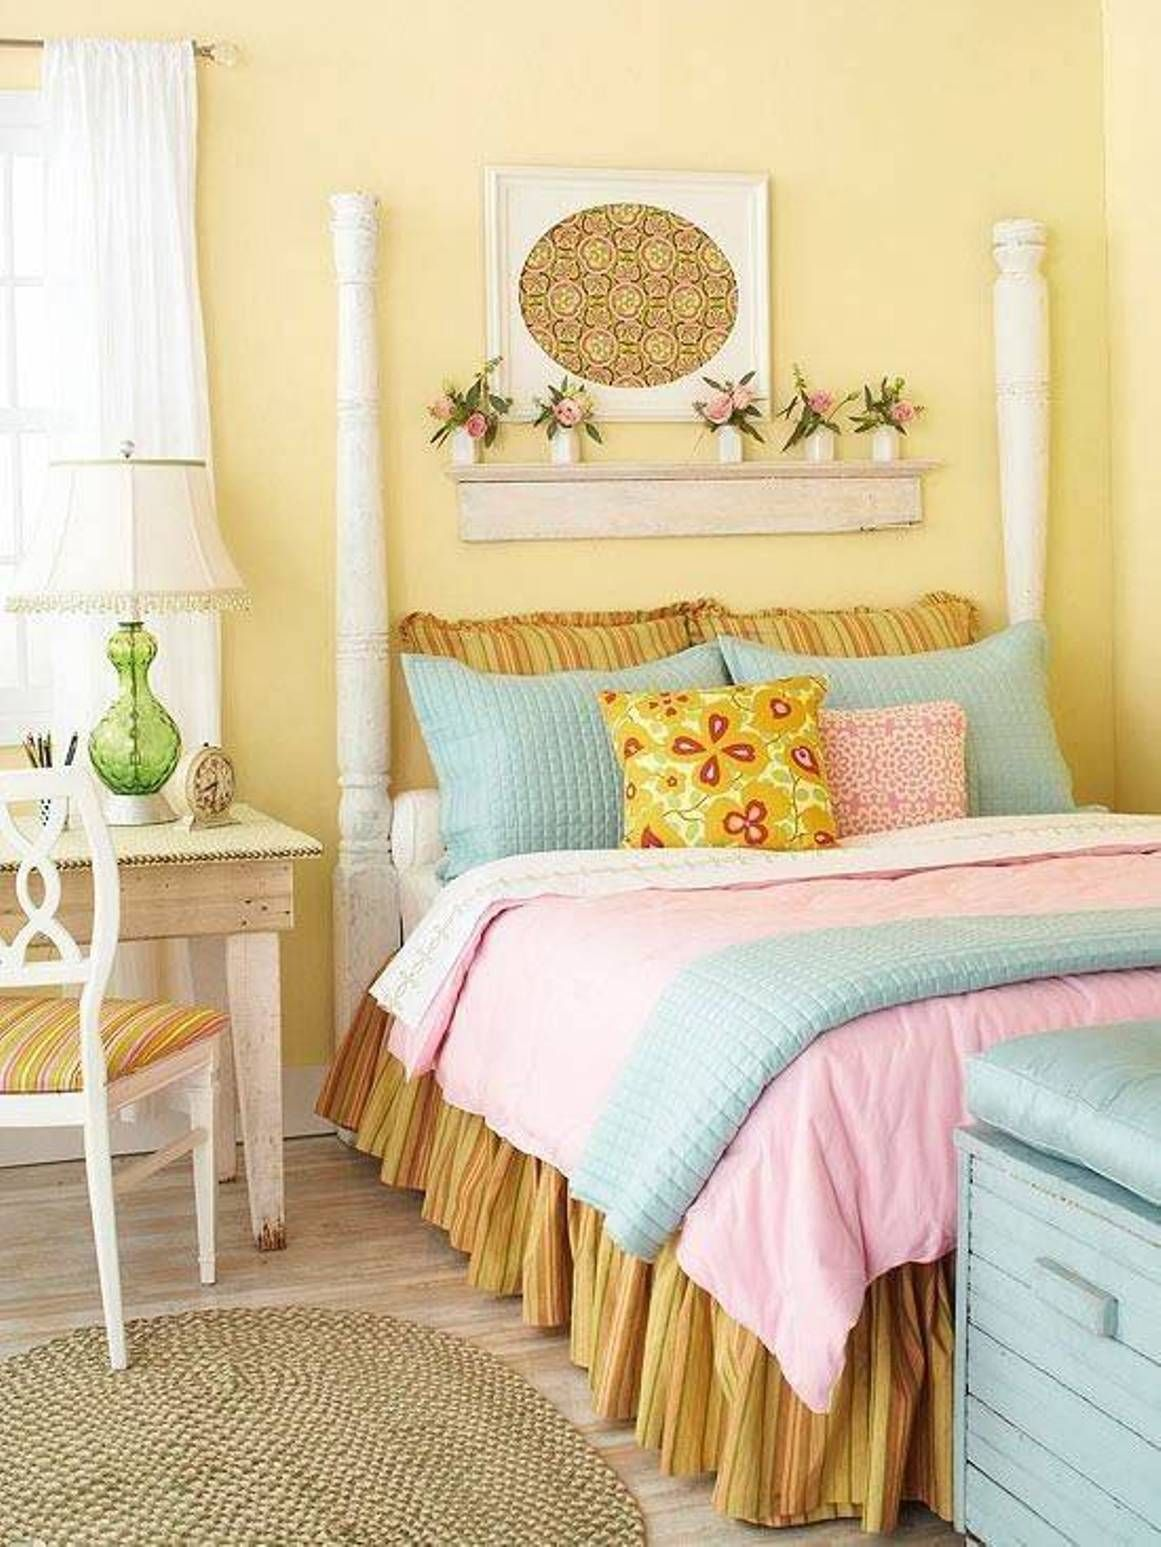 Bedroom , Decorating Tween Girl Bedroom Ideas : Tween Girl Bedroom ...